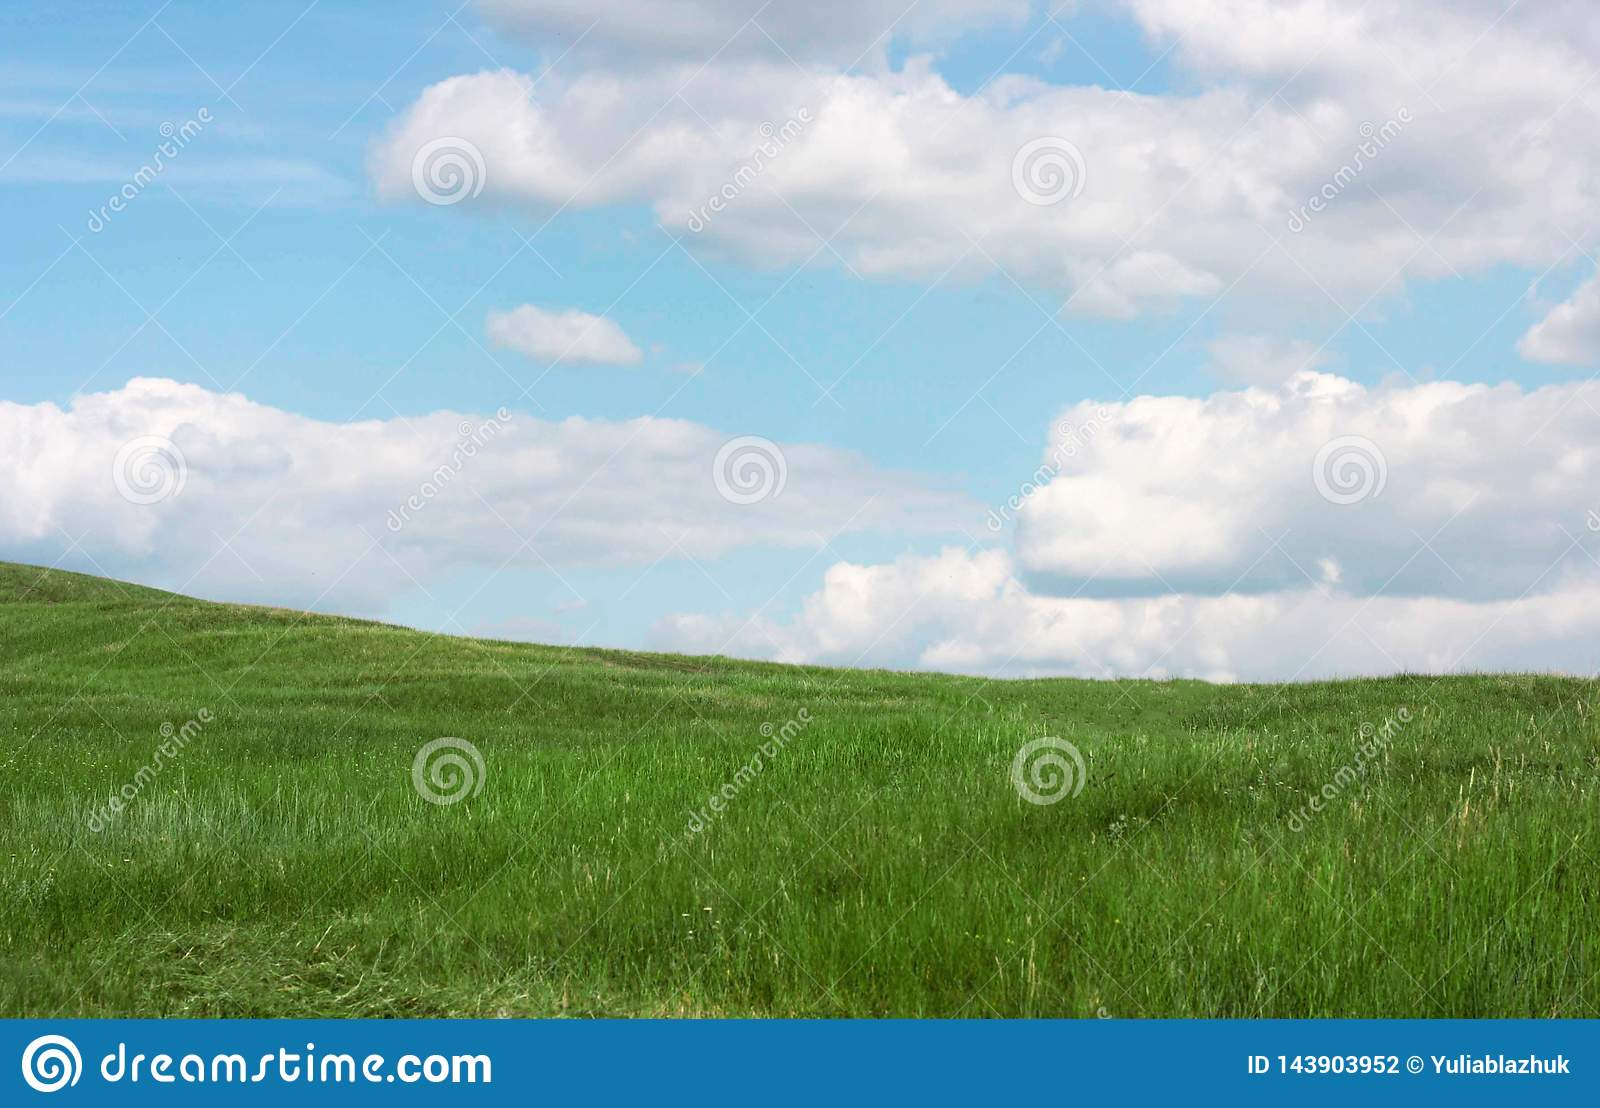 Green grass field landscape with clouds and blue sky